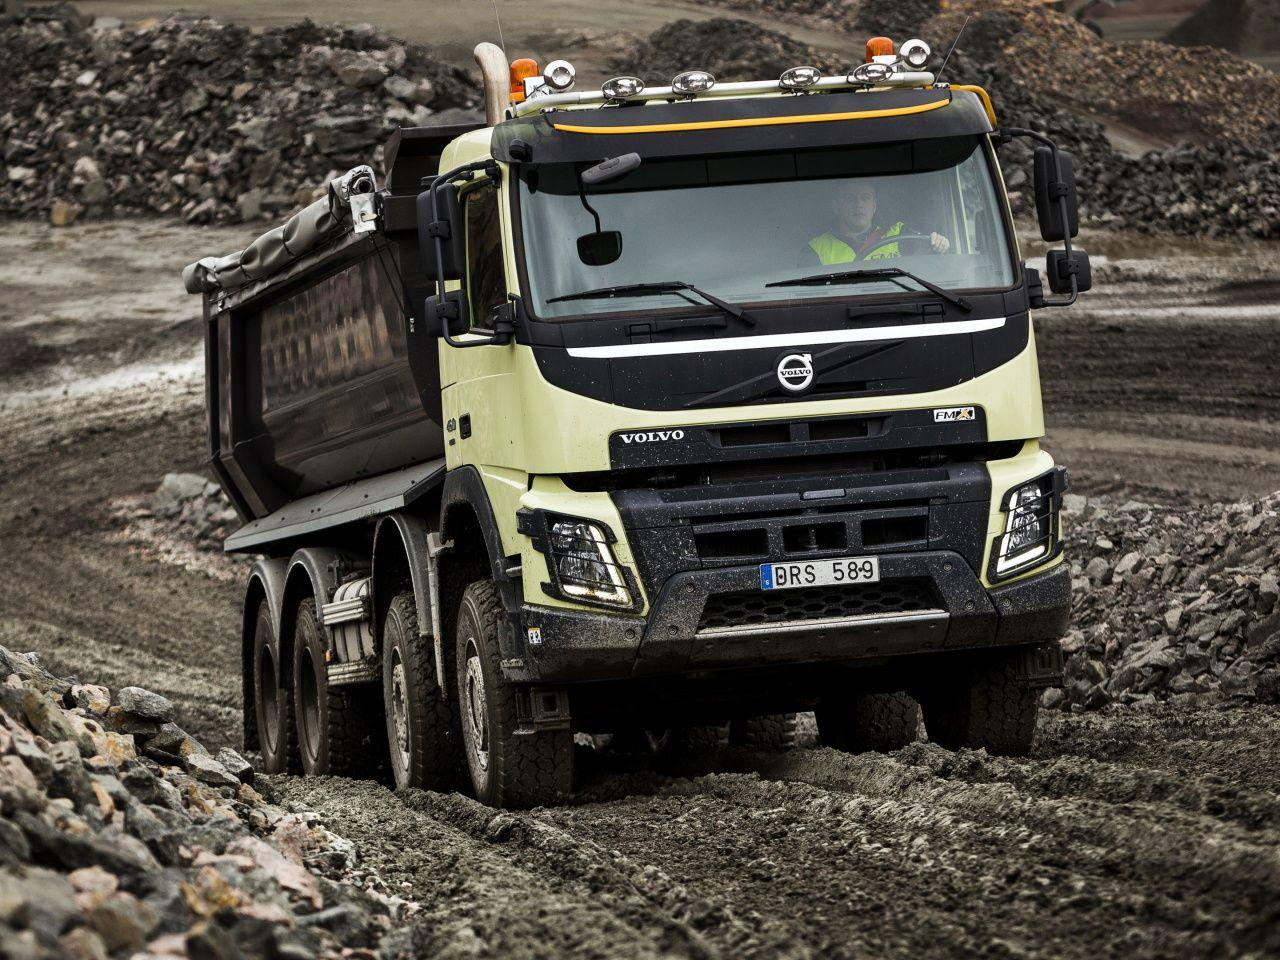 Download 1280x960 Wallpapers Volvo Fh, Automotive Tire, Truck, ab